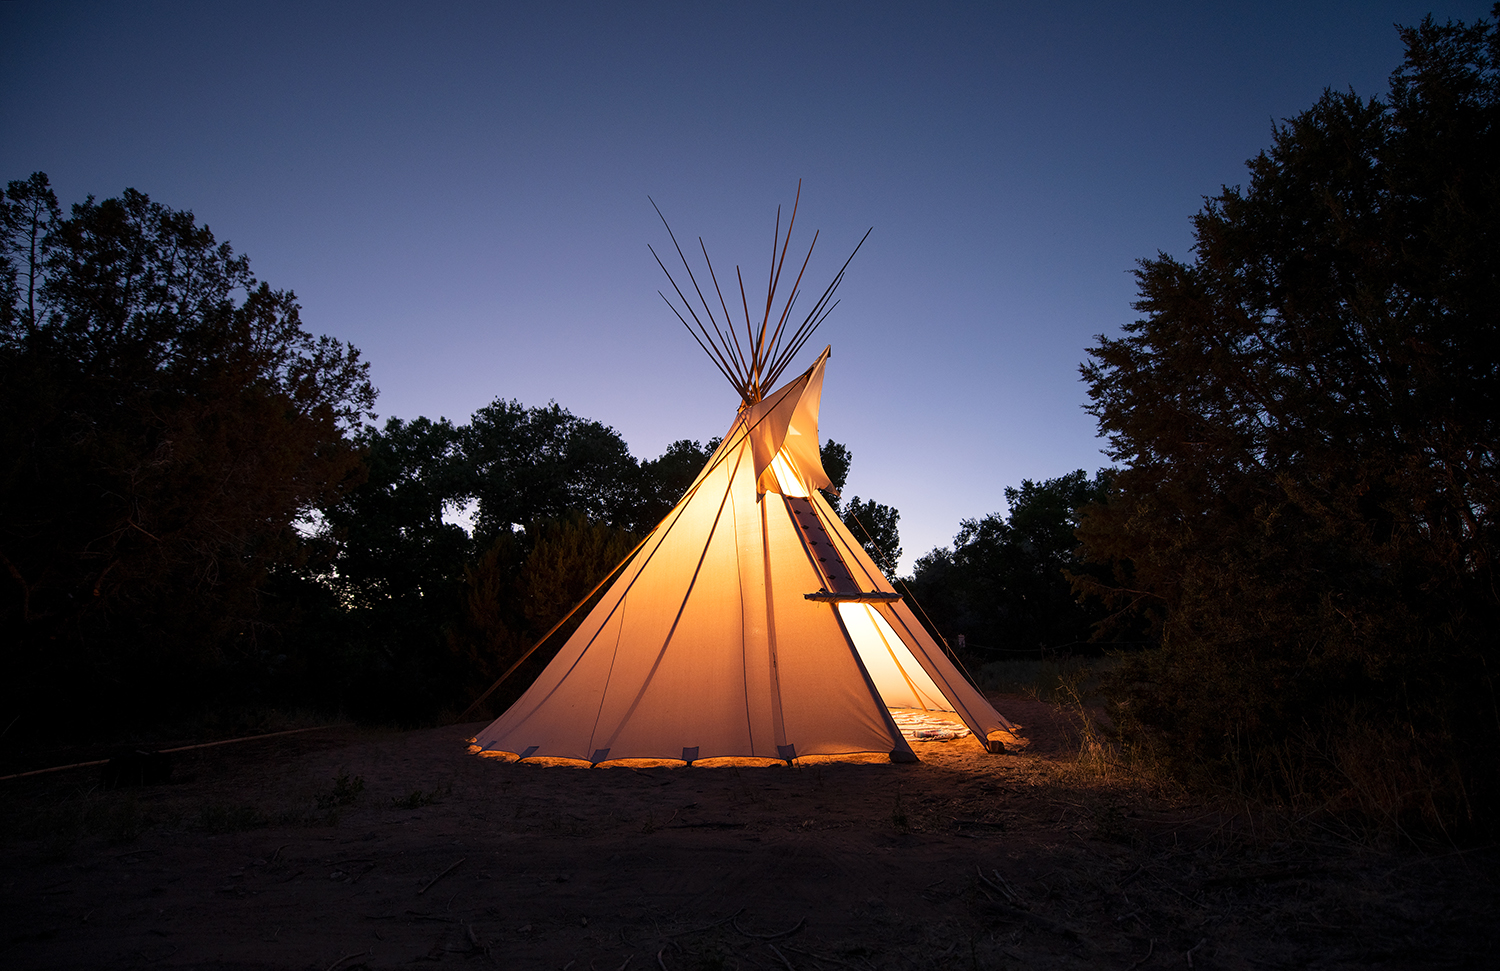 Located in an all-natural spring-fed setting in Santa Fe, New Mexico, Sunrise Springs Spa Resort recently launched Native American-themed programming.